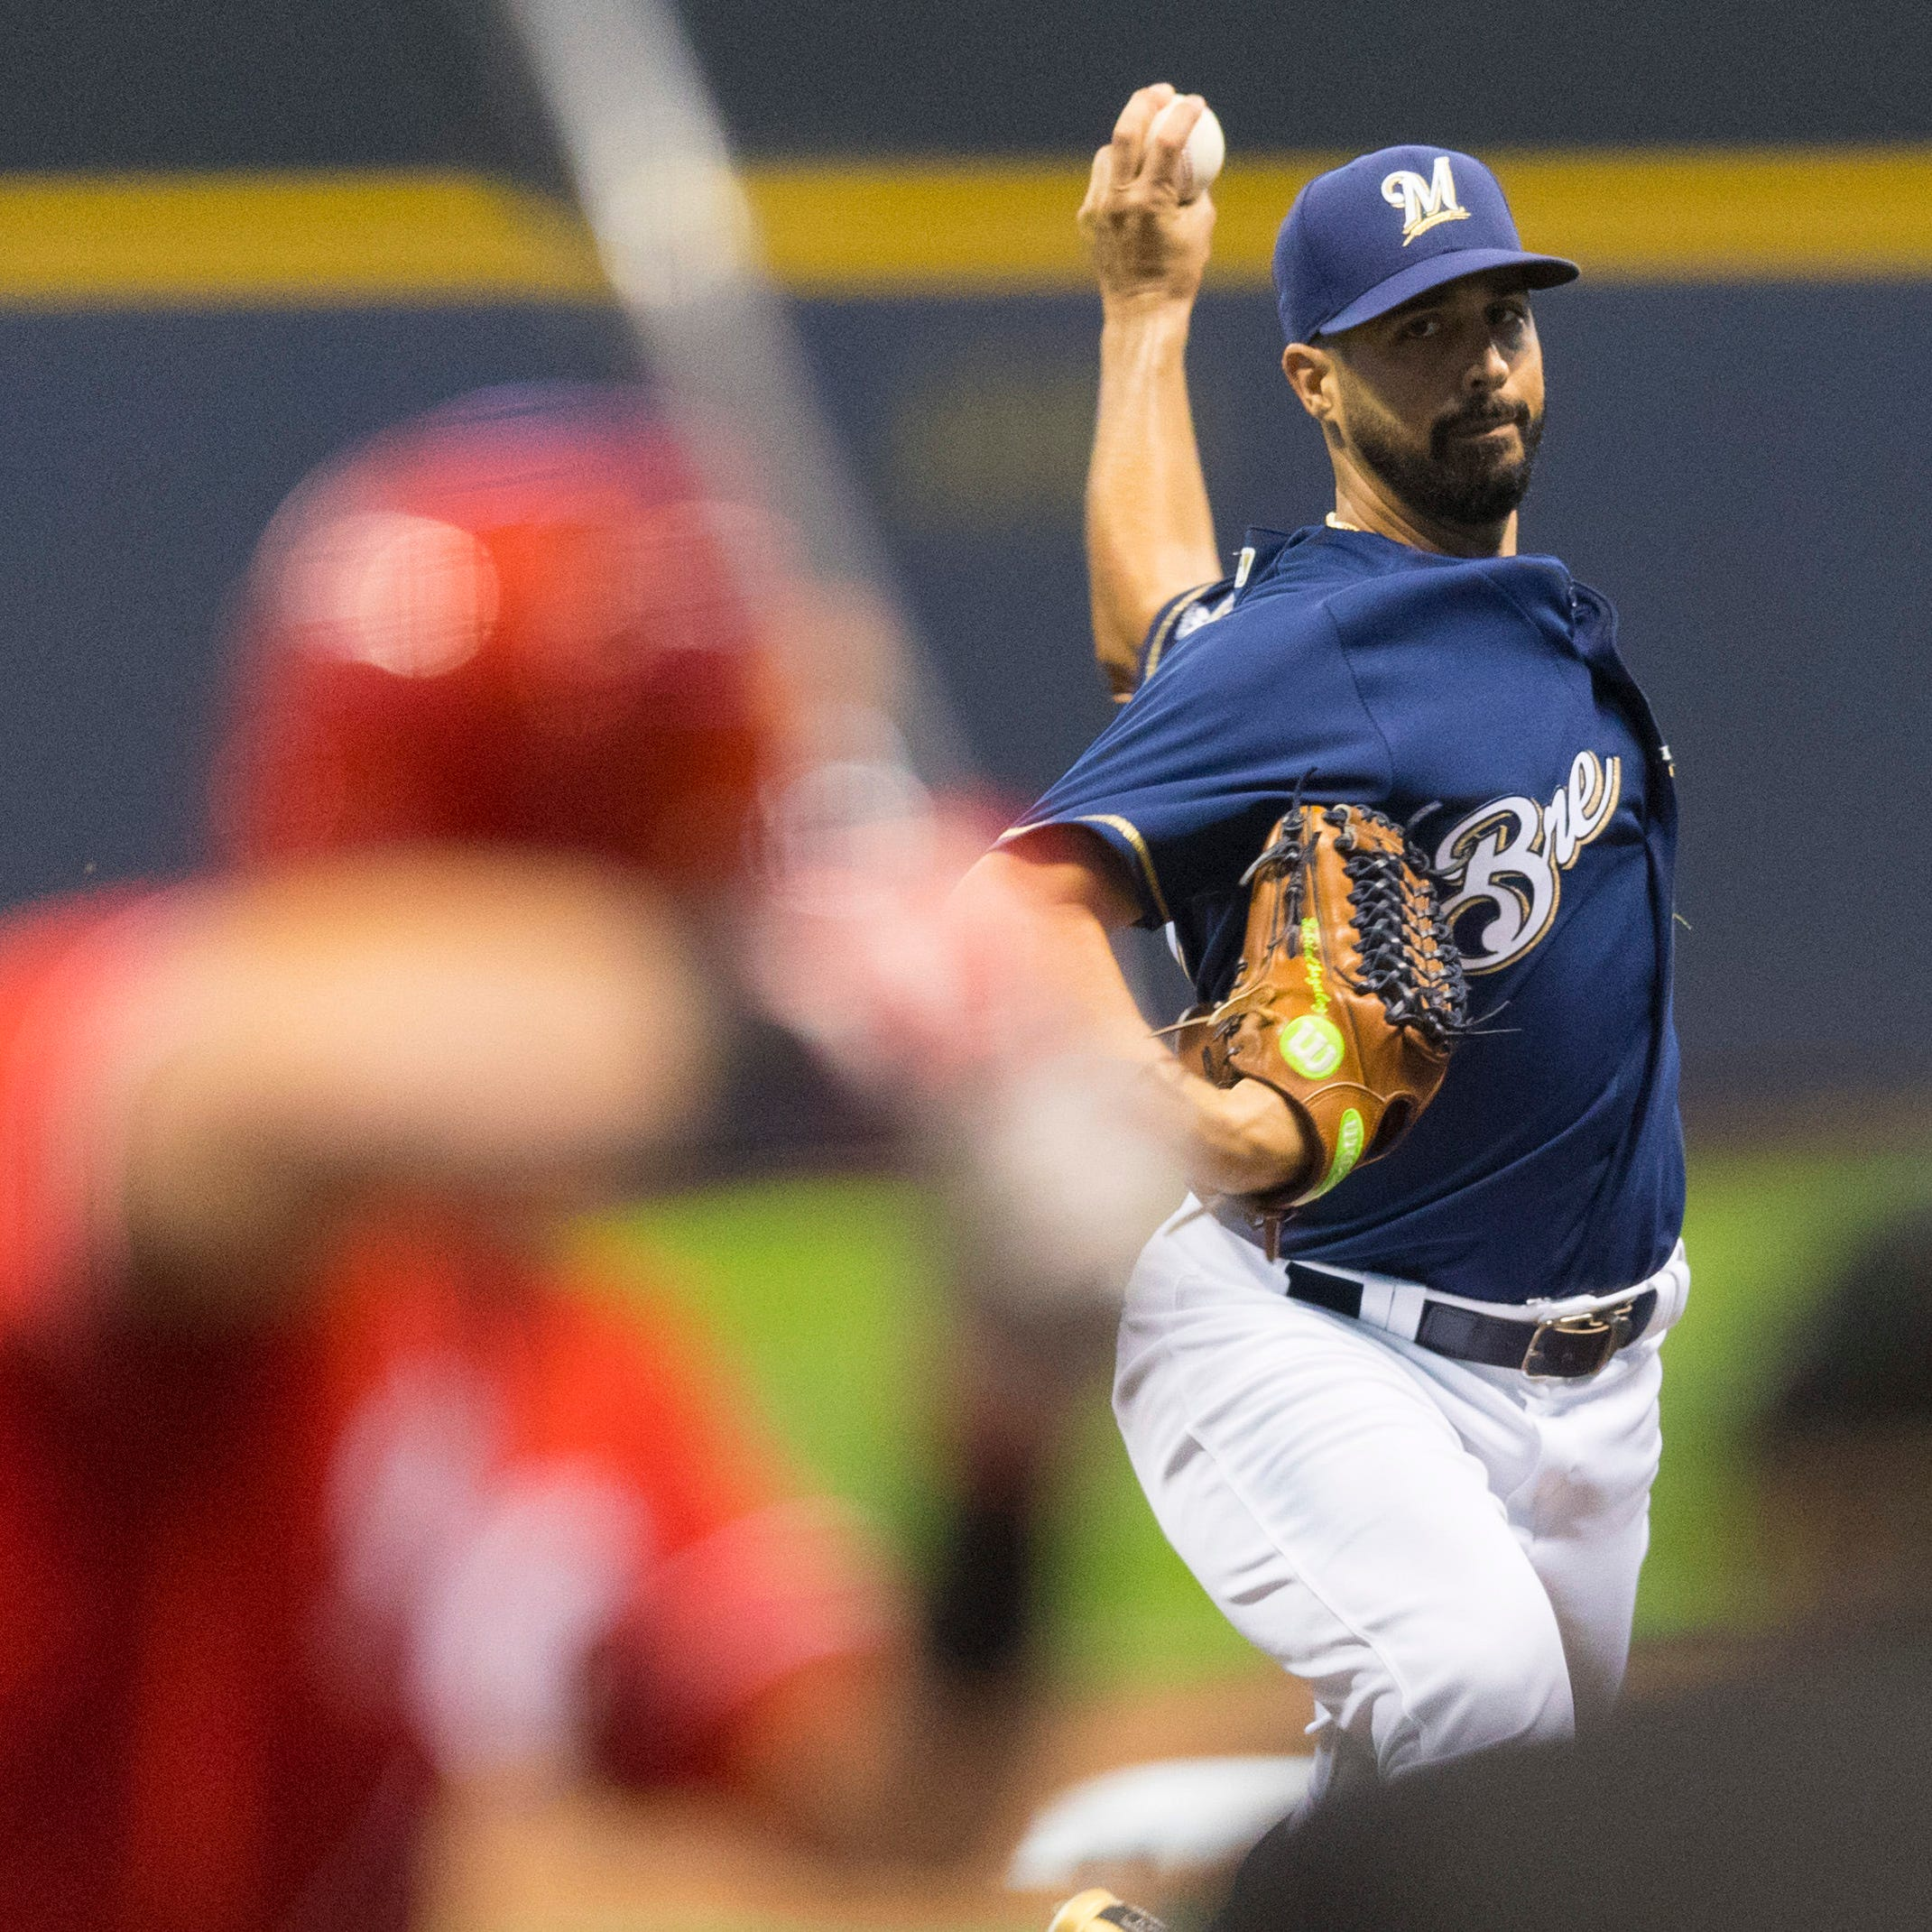 Having Gonzalez on their side instead of Harvey was good omen, and a lift, for Brewers